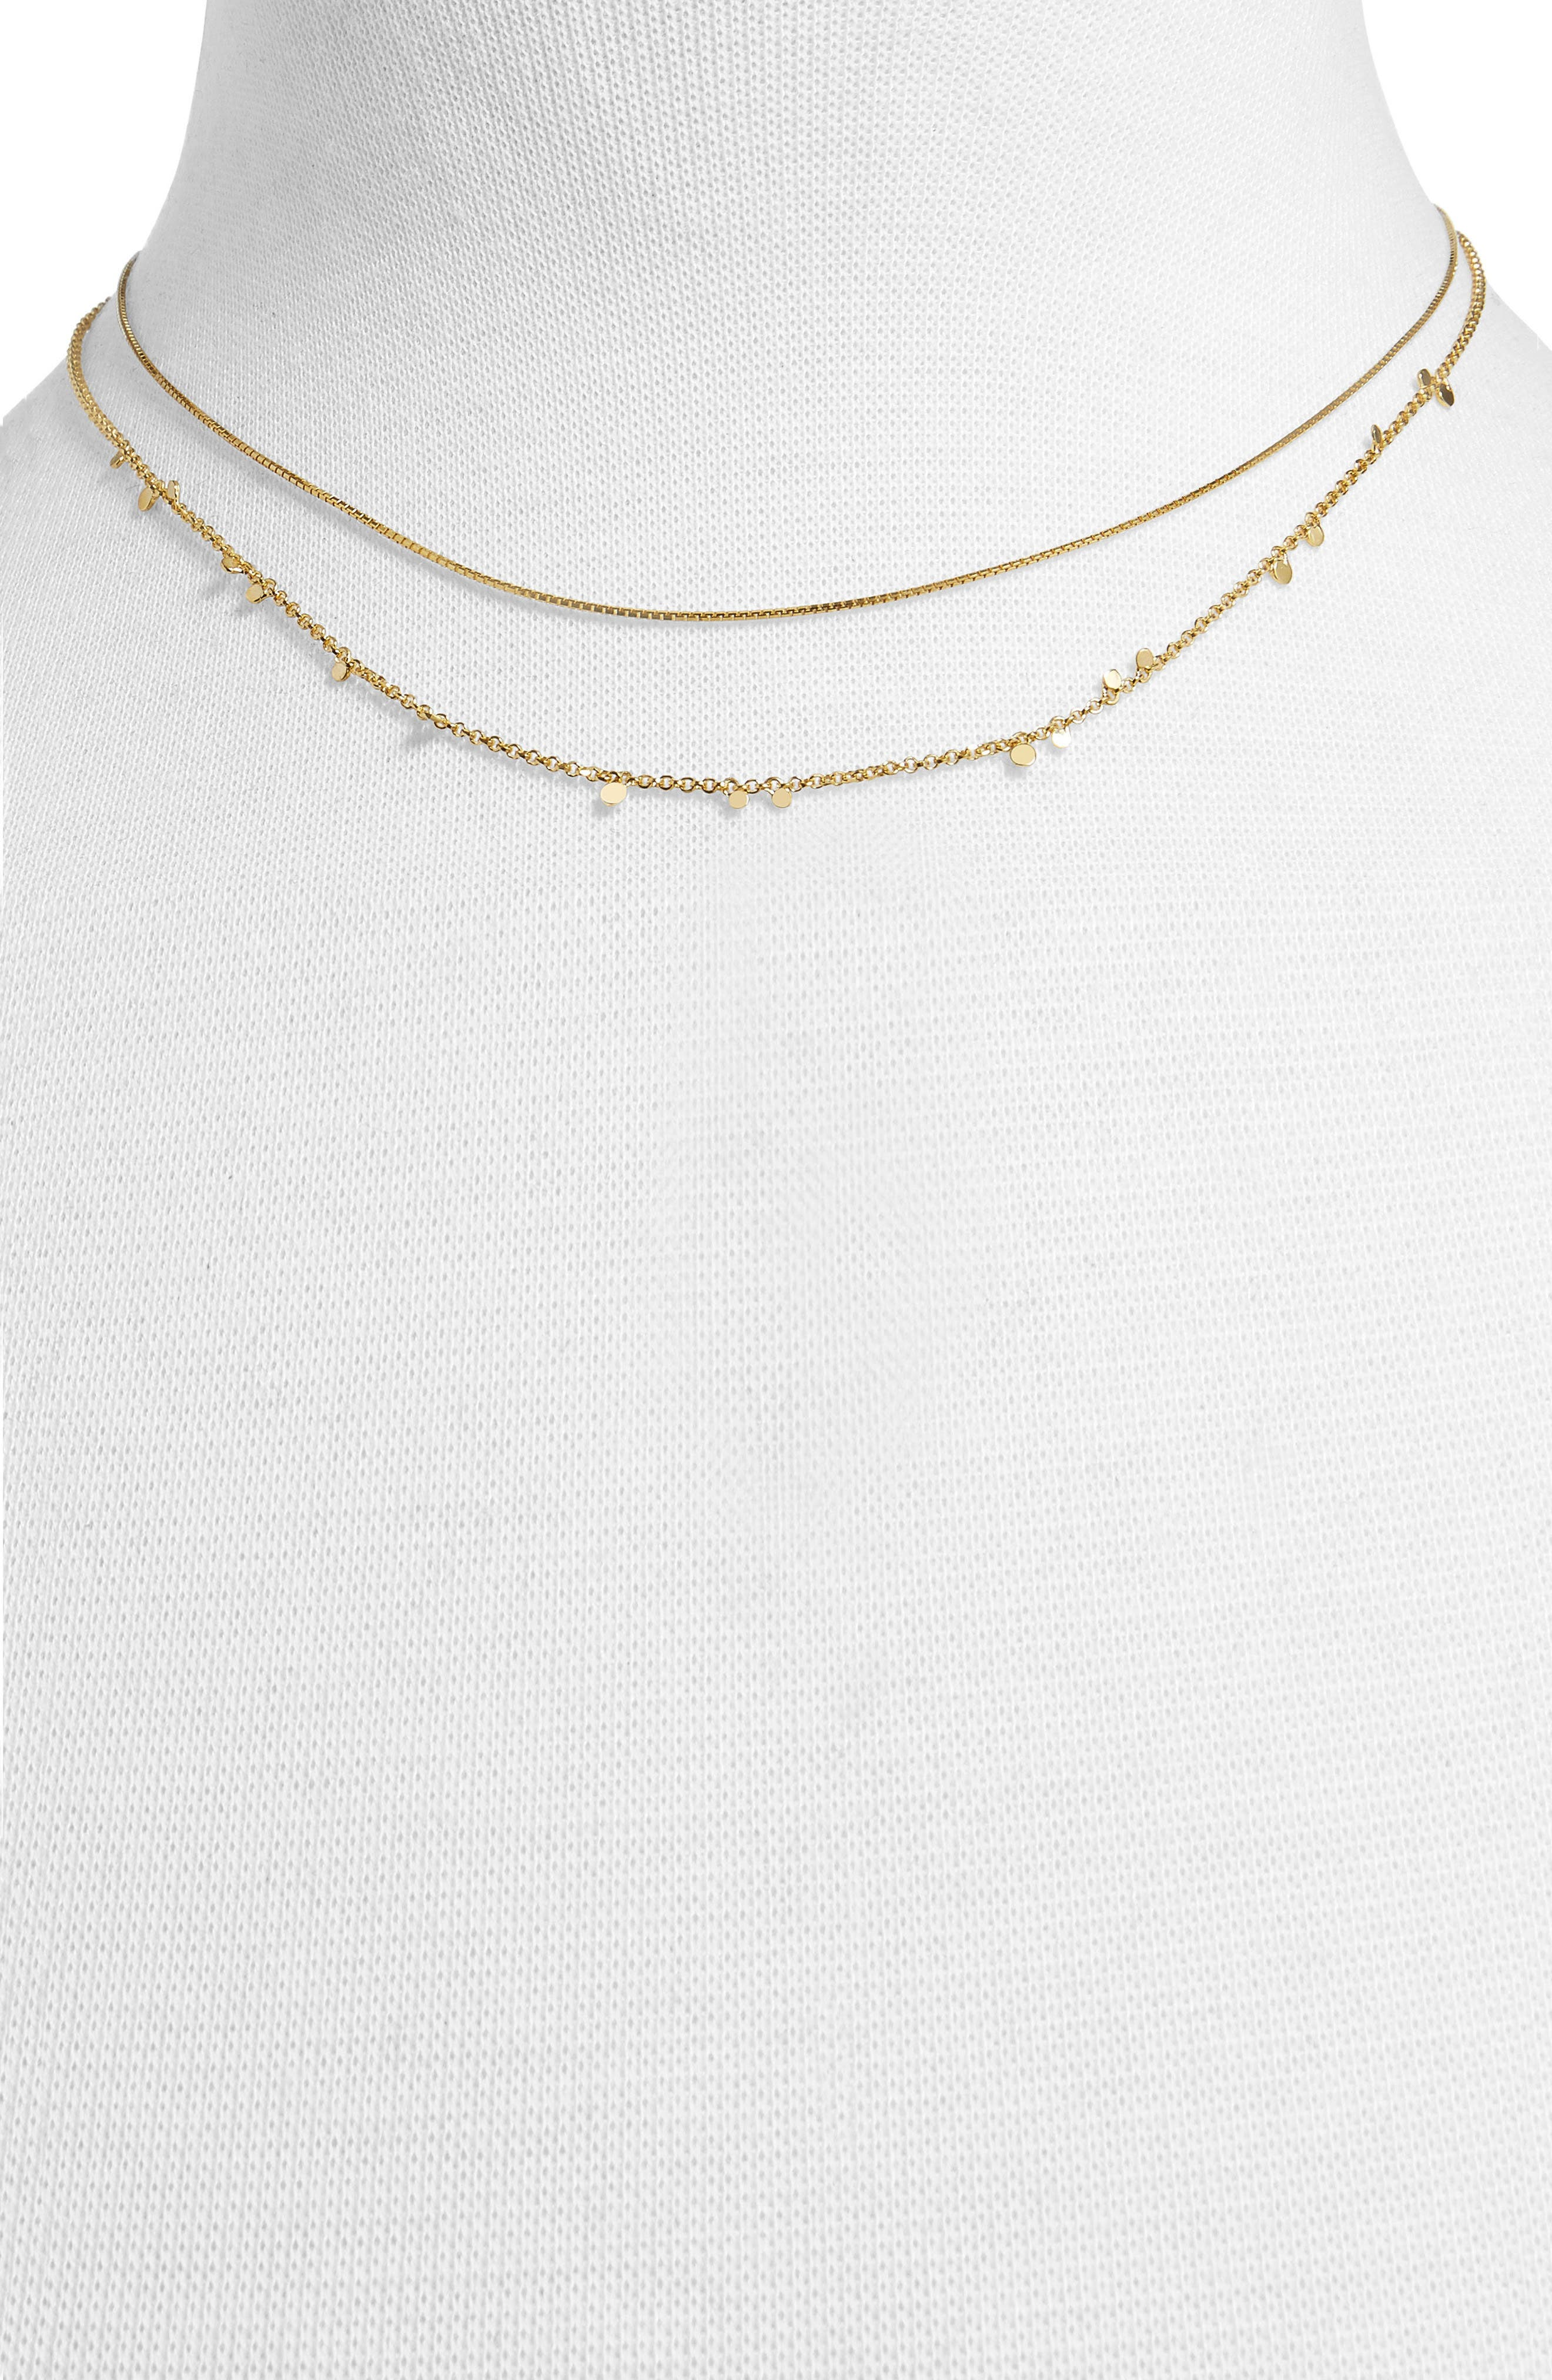 Confetti Everyday Two Strand Necklace,                             Alternate thumbnail 2, color,                             710